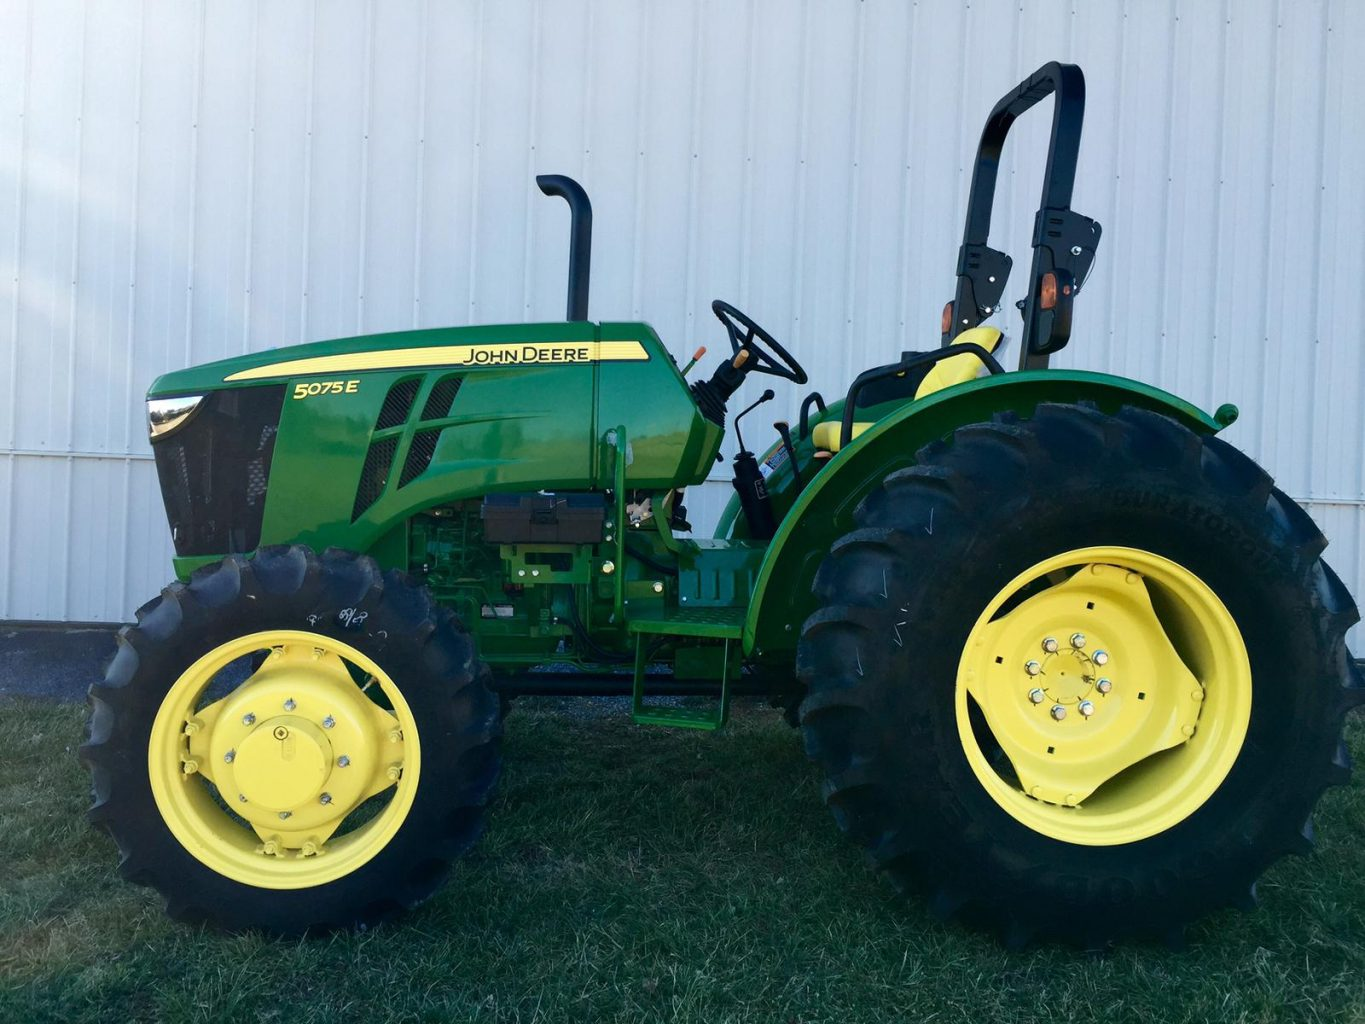 john-deere-5075-e-4wd--side-view